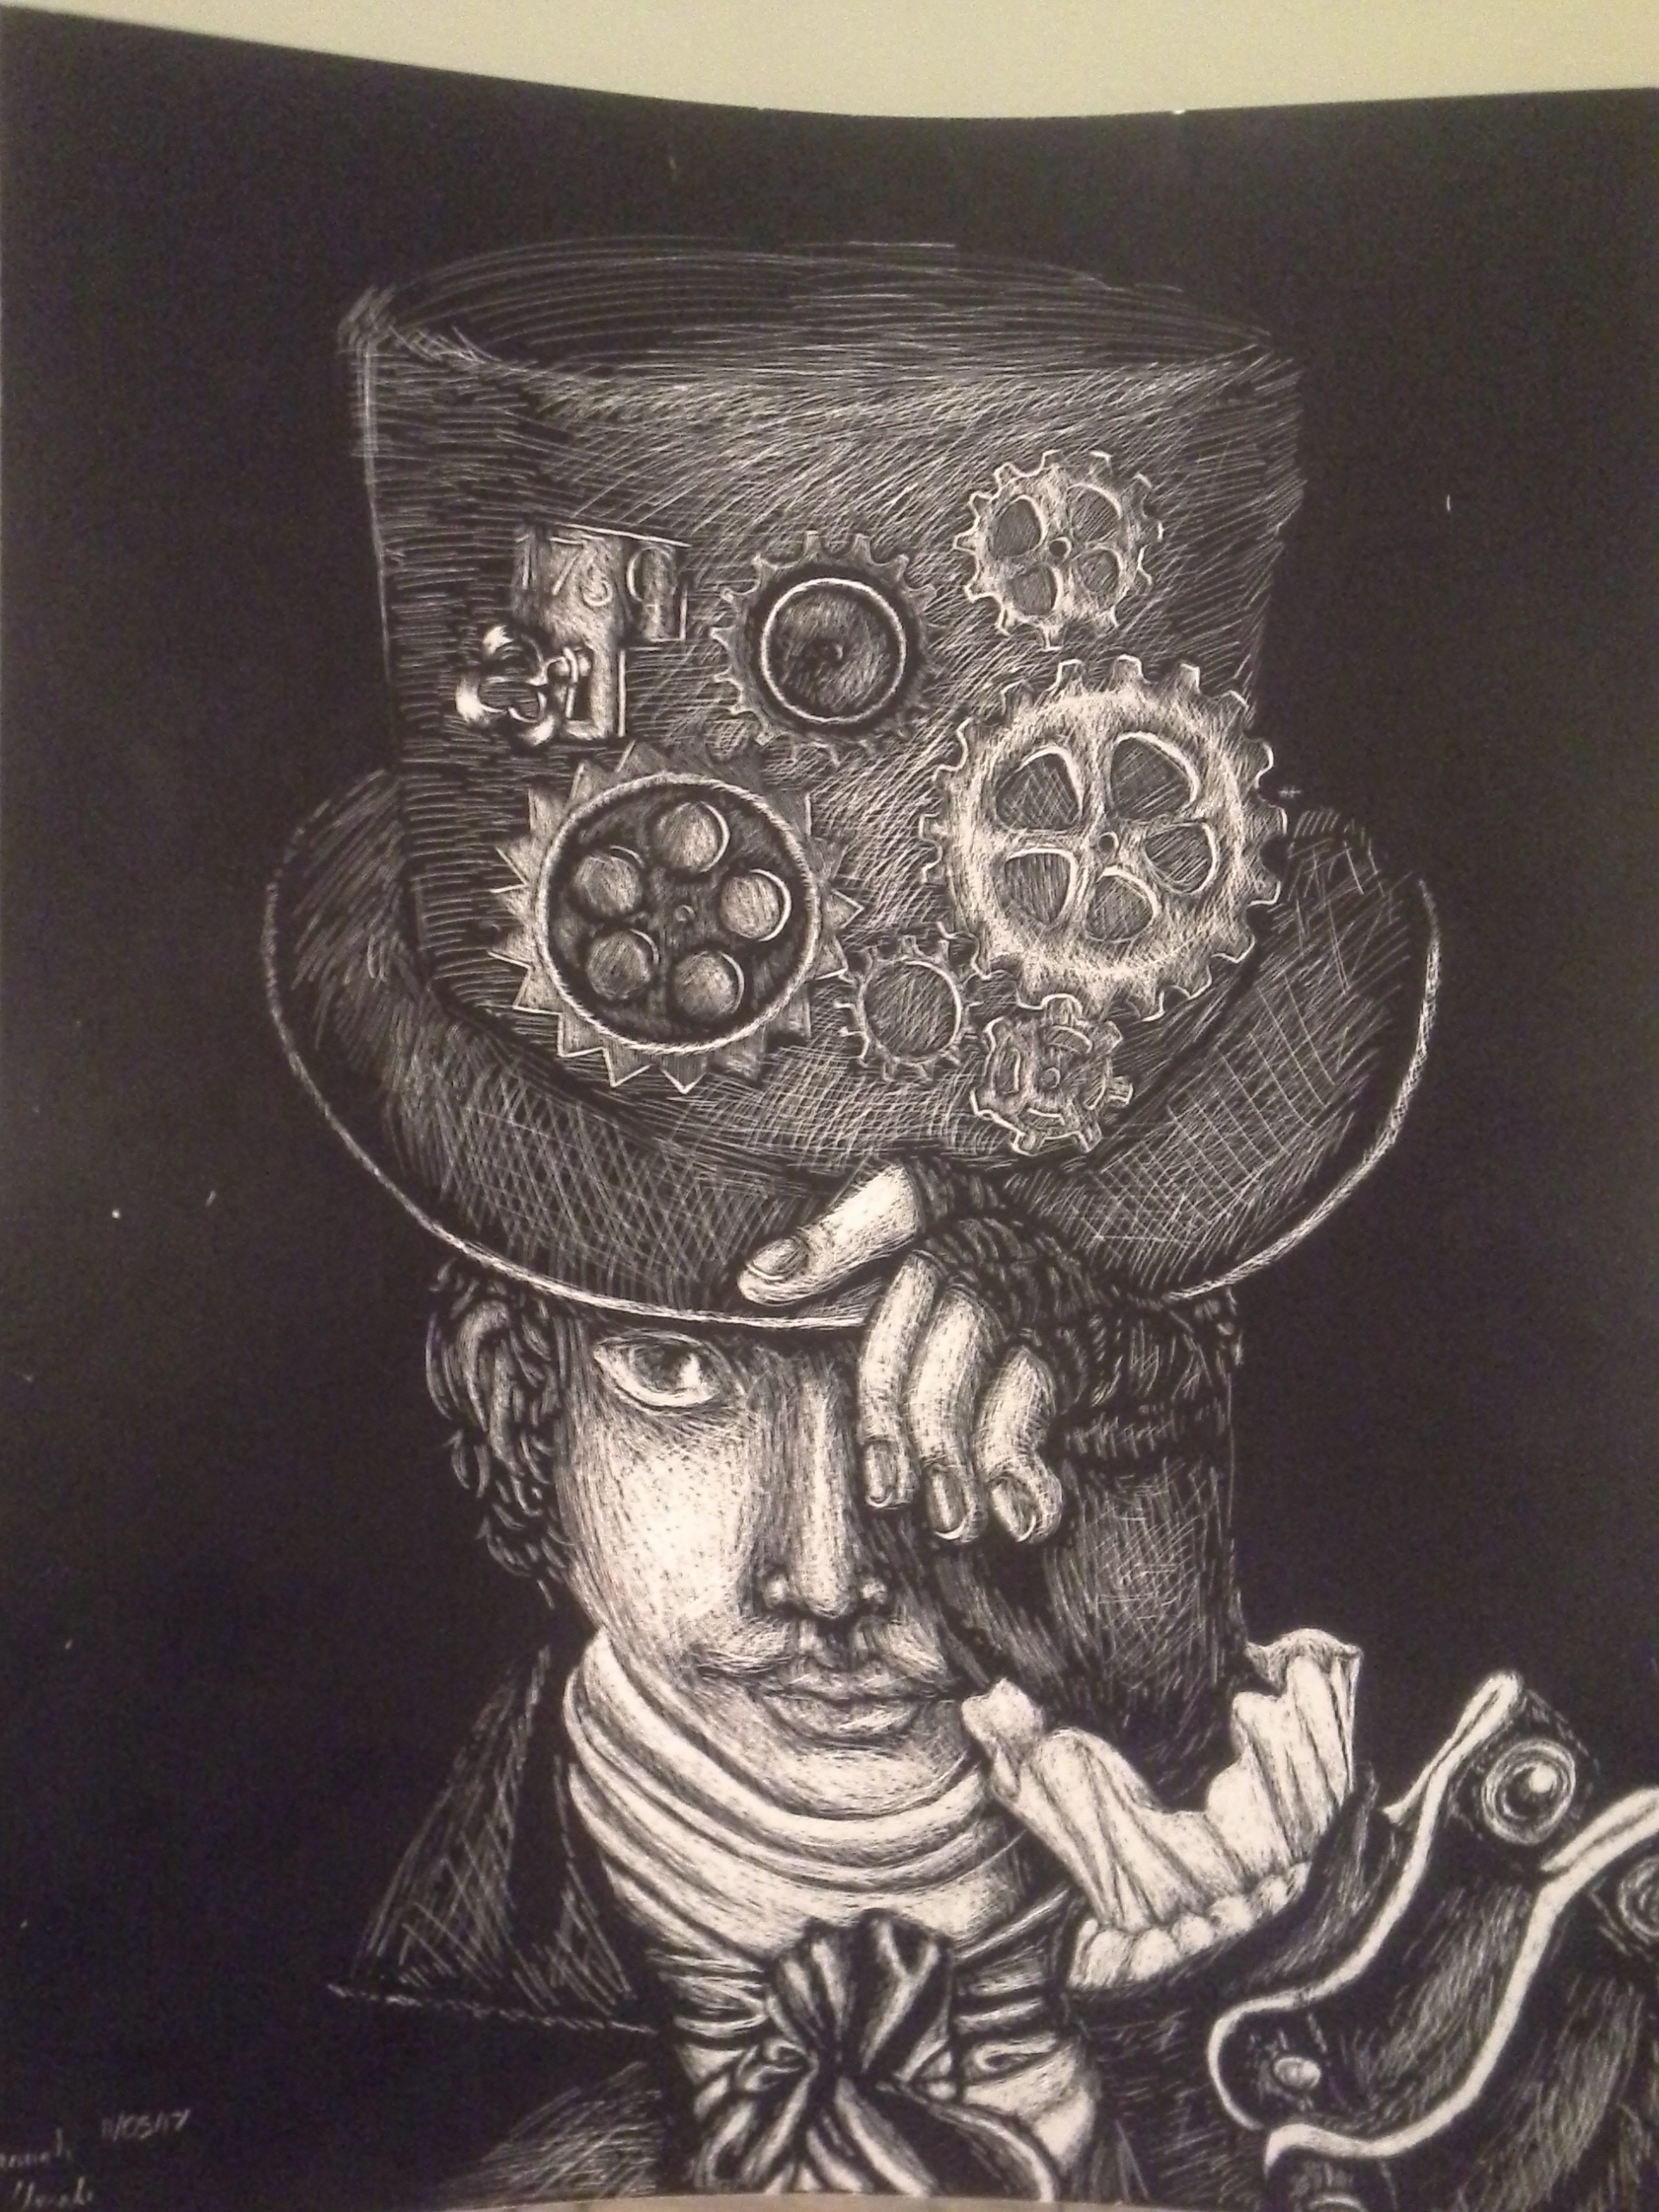 Scratchboard: The Industrial Revolution by Melomiku